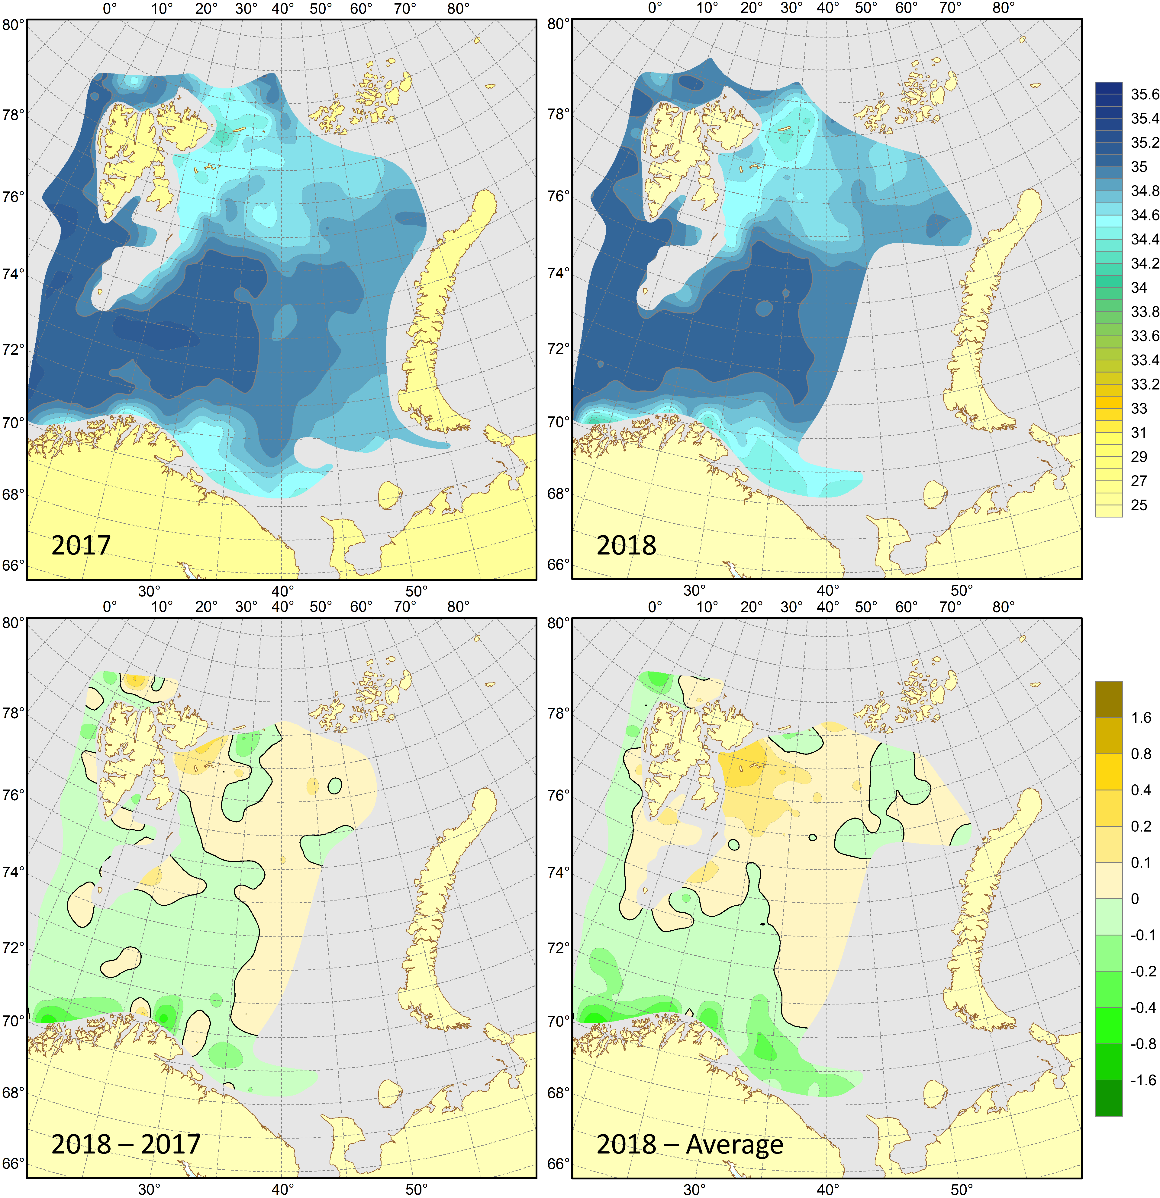 Figure 3.1.14. 100 m salinities in August–September 2017 (upper left) and 2018 (upper right), their differences between 2018 and 2017 (lower left) and anomalies in August–September 2018 (lower right).